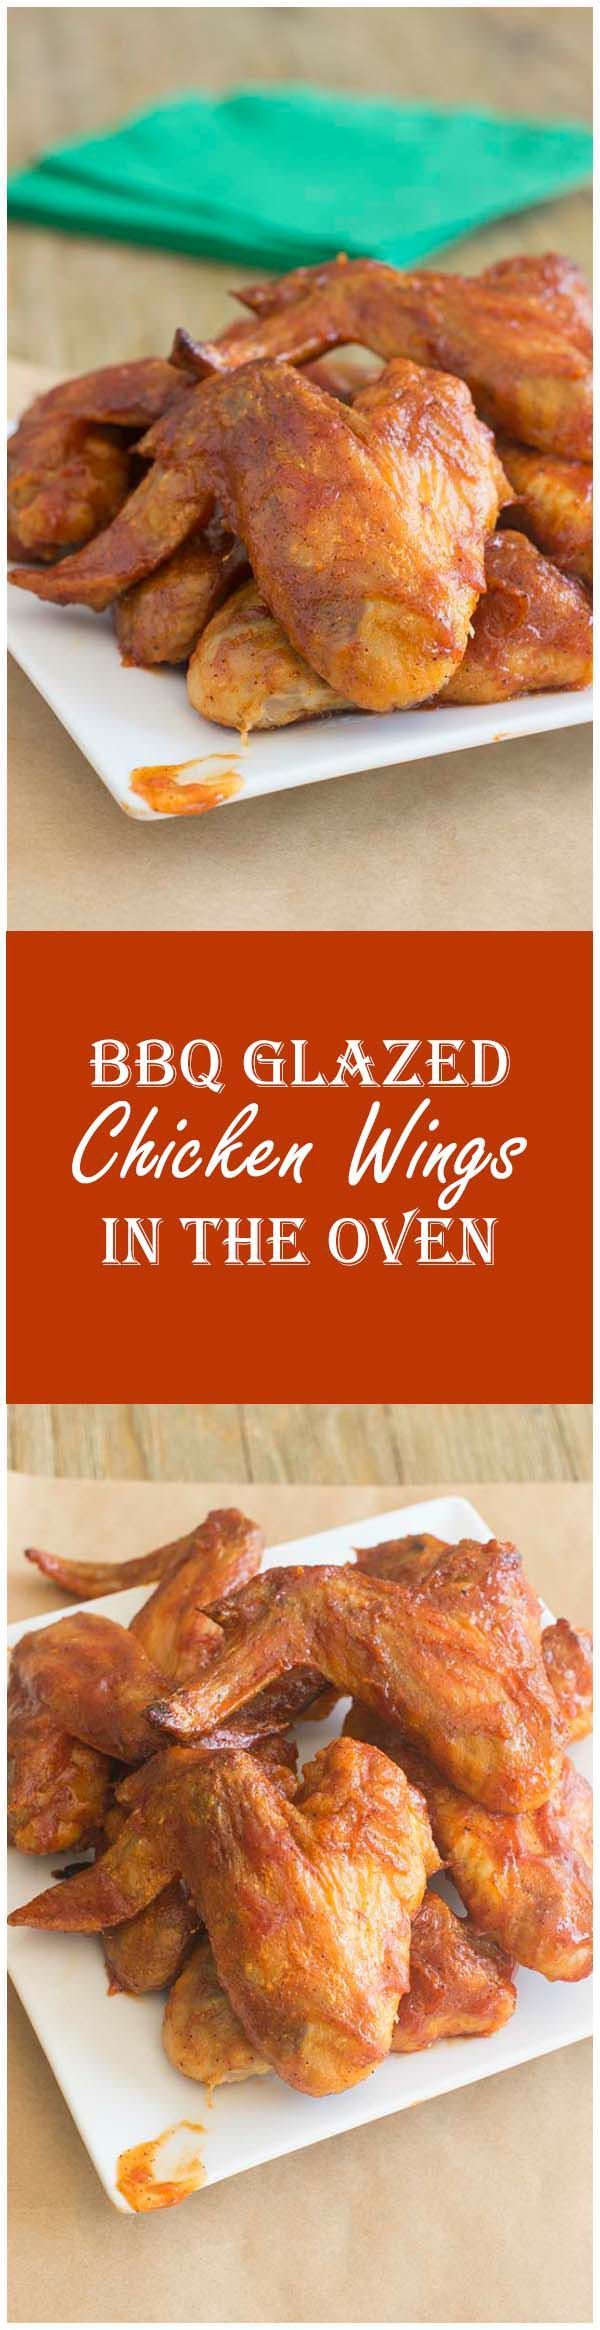 Here's where two of my best ever recipes meet to become the best ever BBQ chicken wings. Crispy oven-baked wings with deliciously perfect sweet BBQ sauce. #bbqchickenwings  #appetizerrecipes #superbowlfood #cookthestory